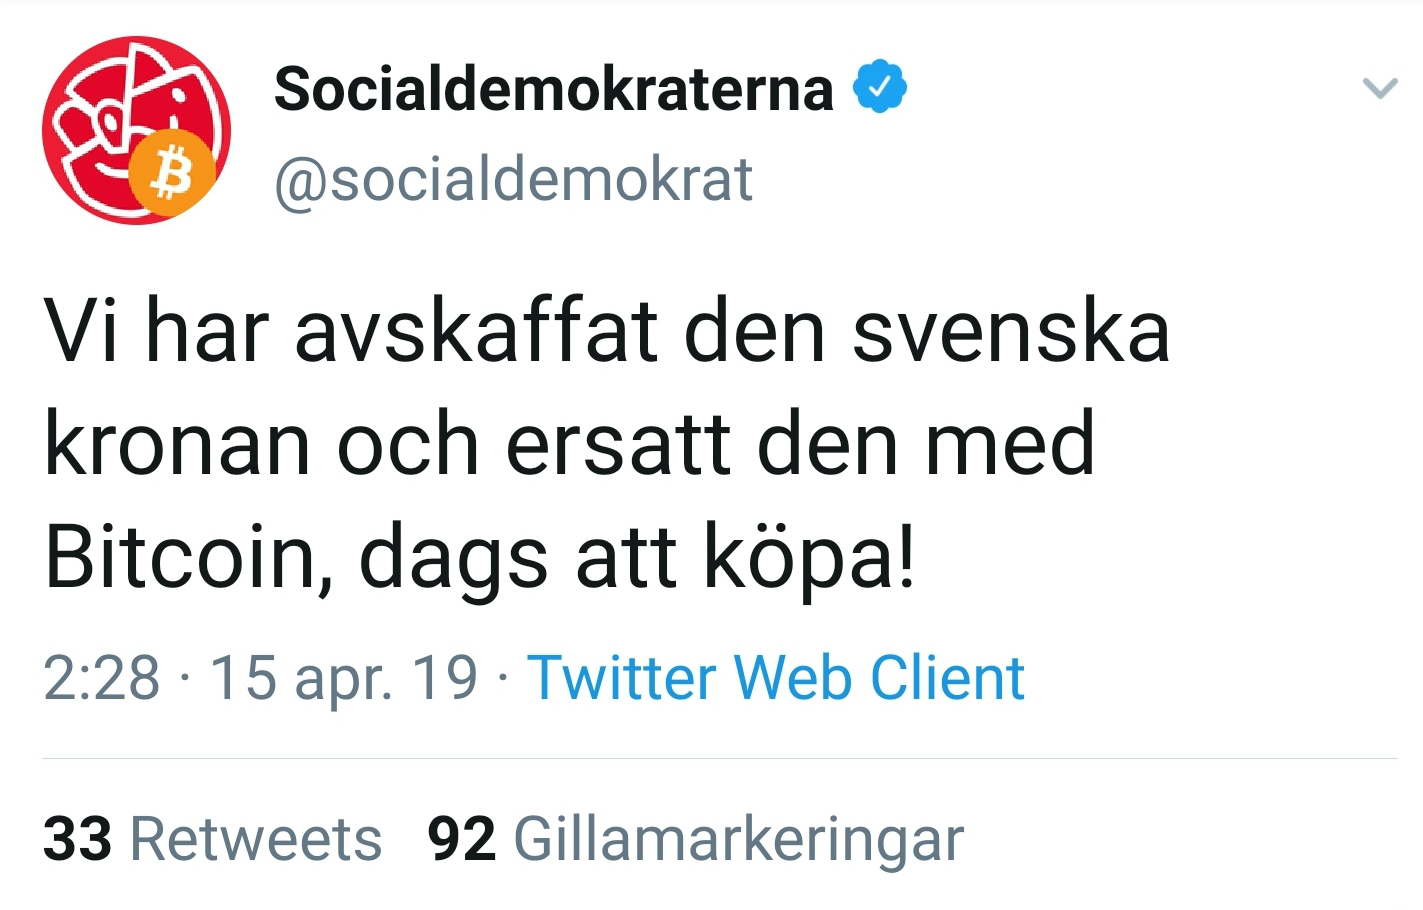 Swedish Social Democratic Party's Twitter account hacked.